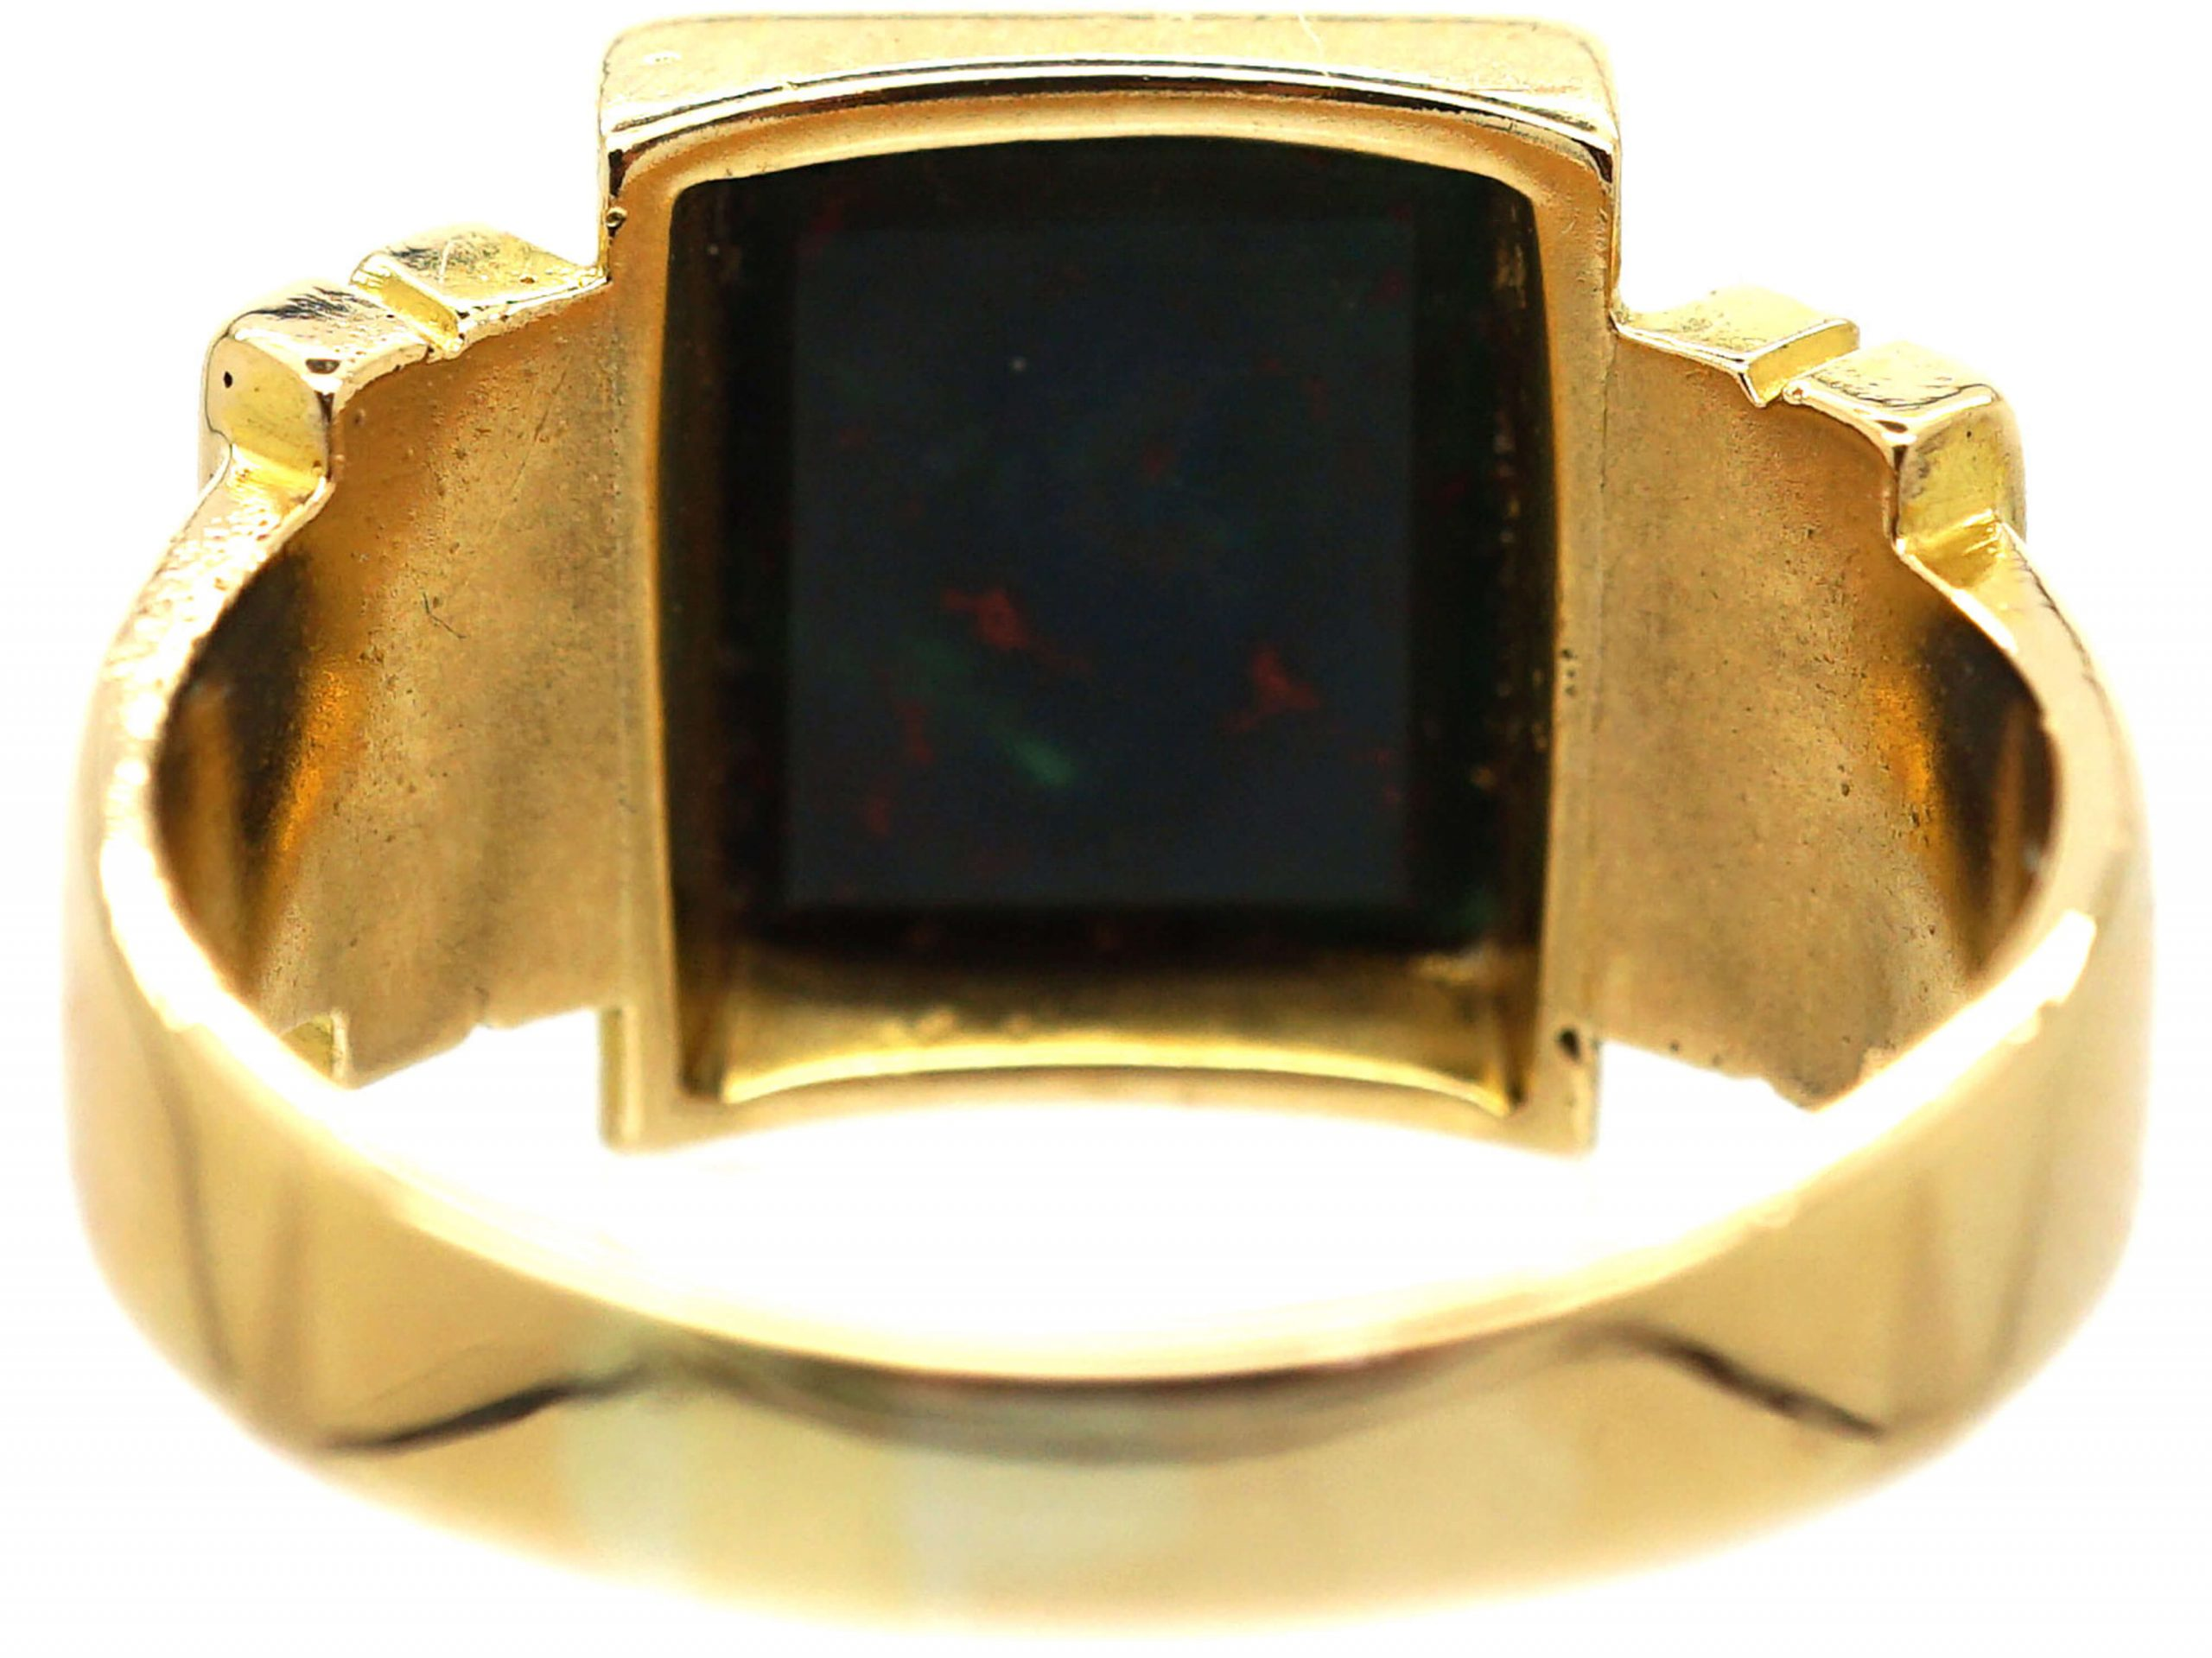 Victorian 18ct Gold Signet Ring set with a Bloodstone